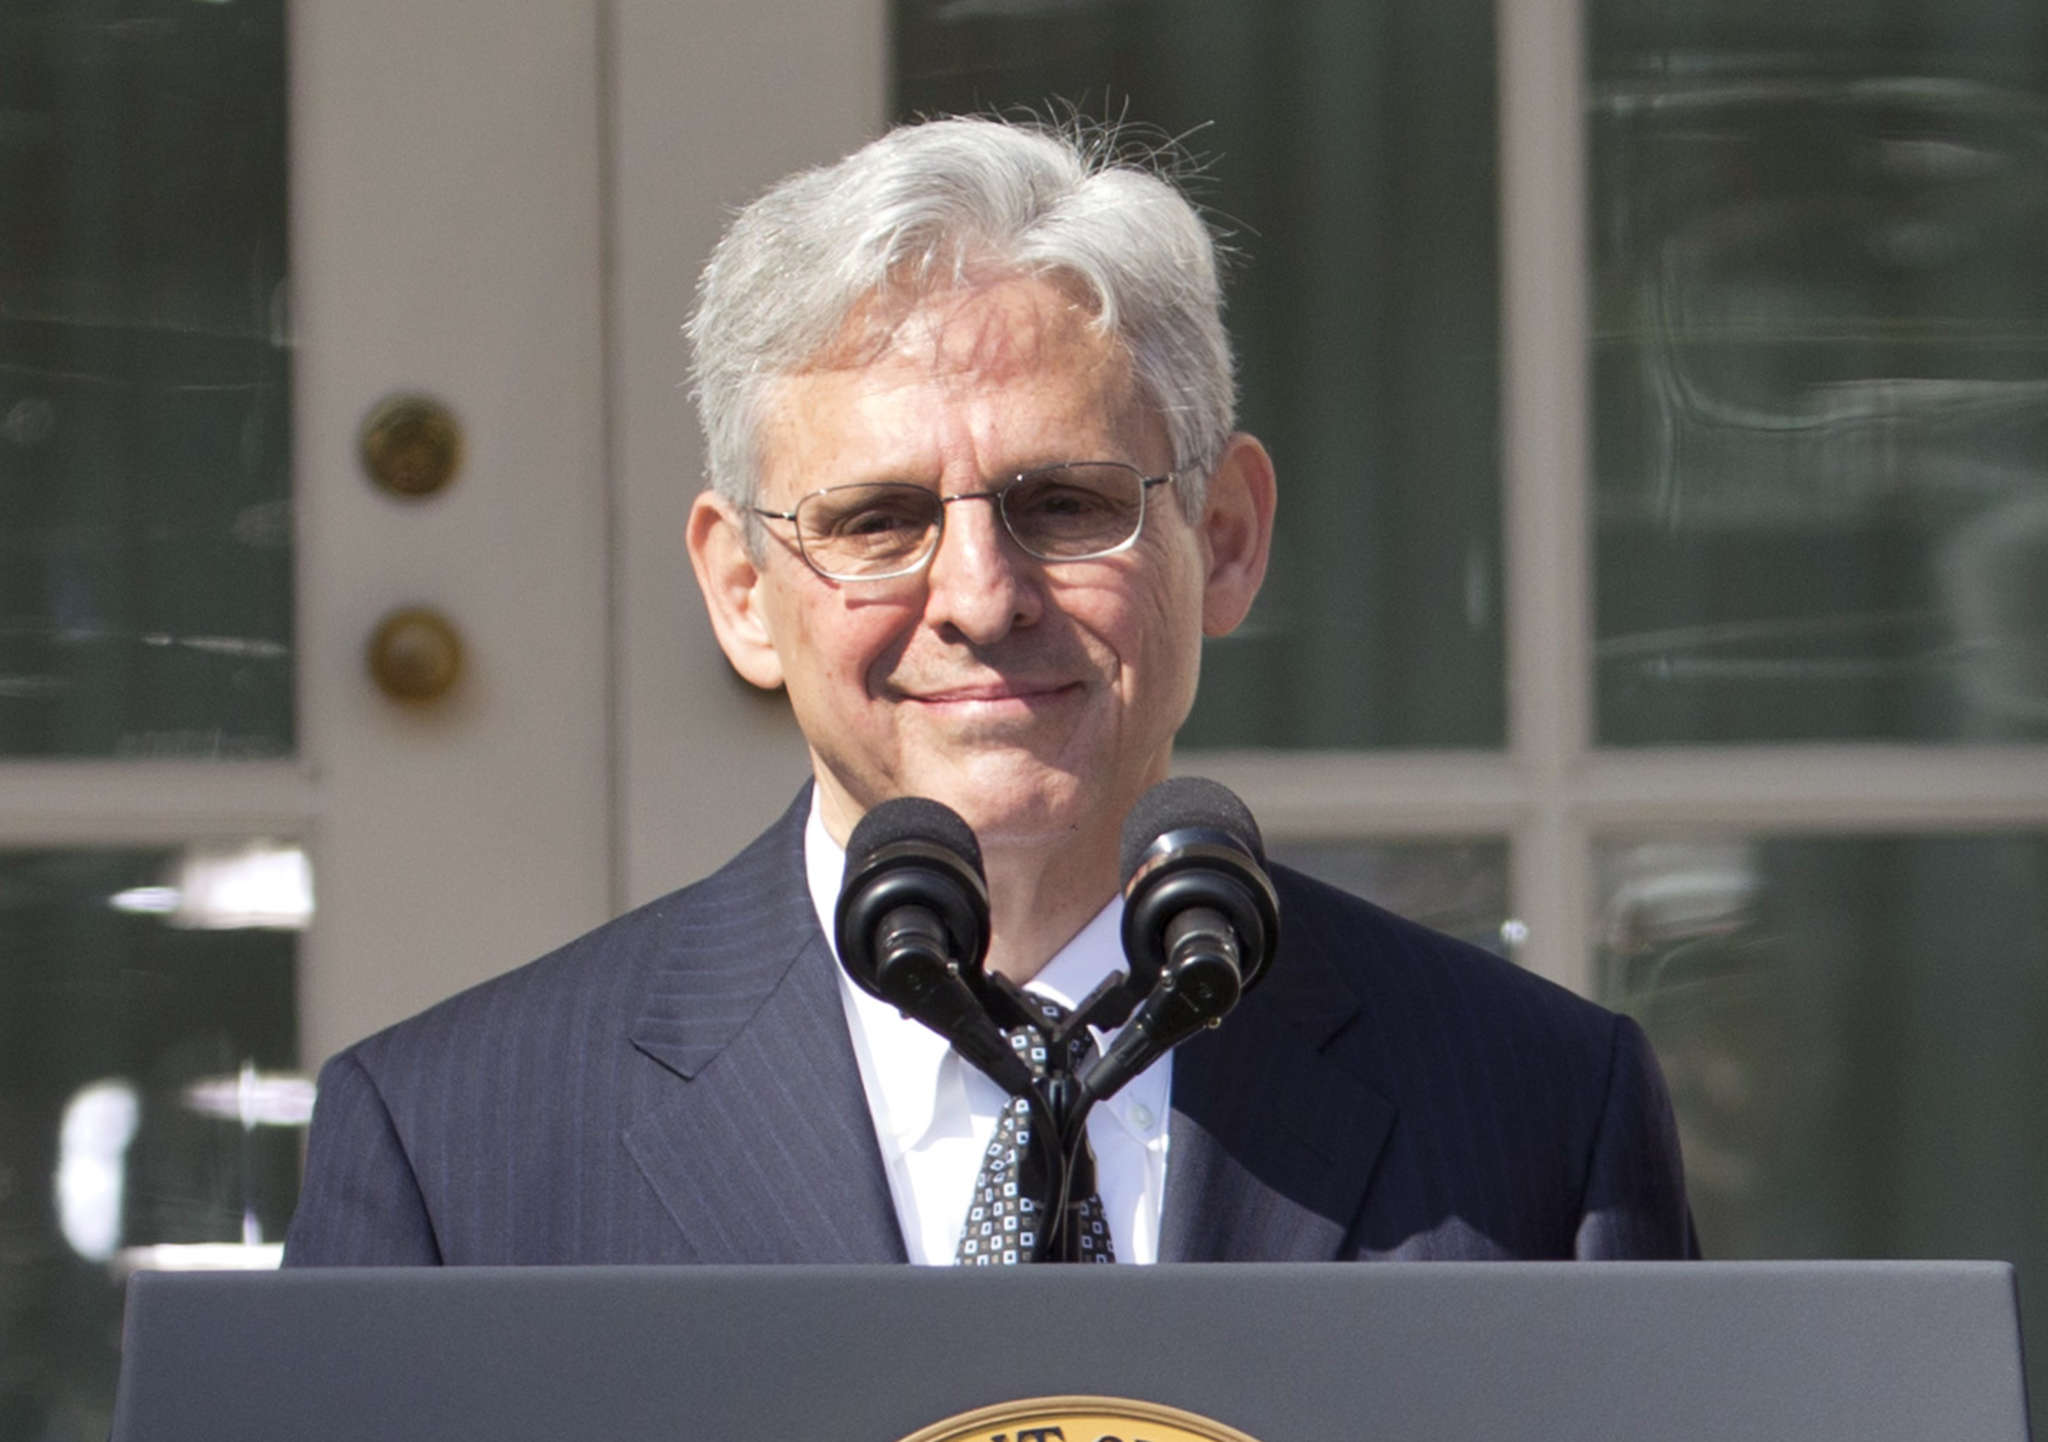 Merrick Garland, federal appeals court judge.